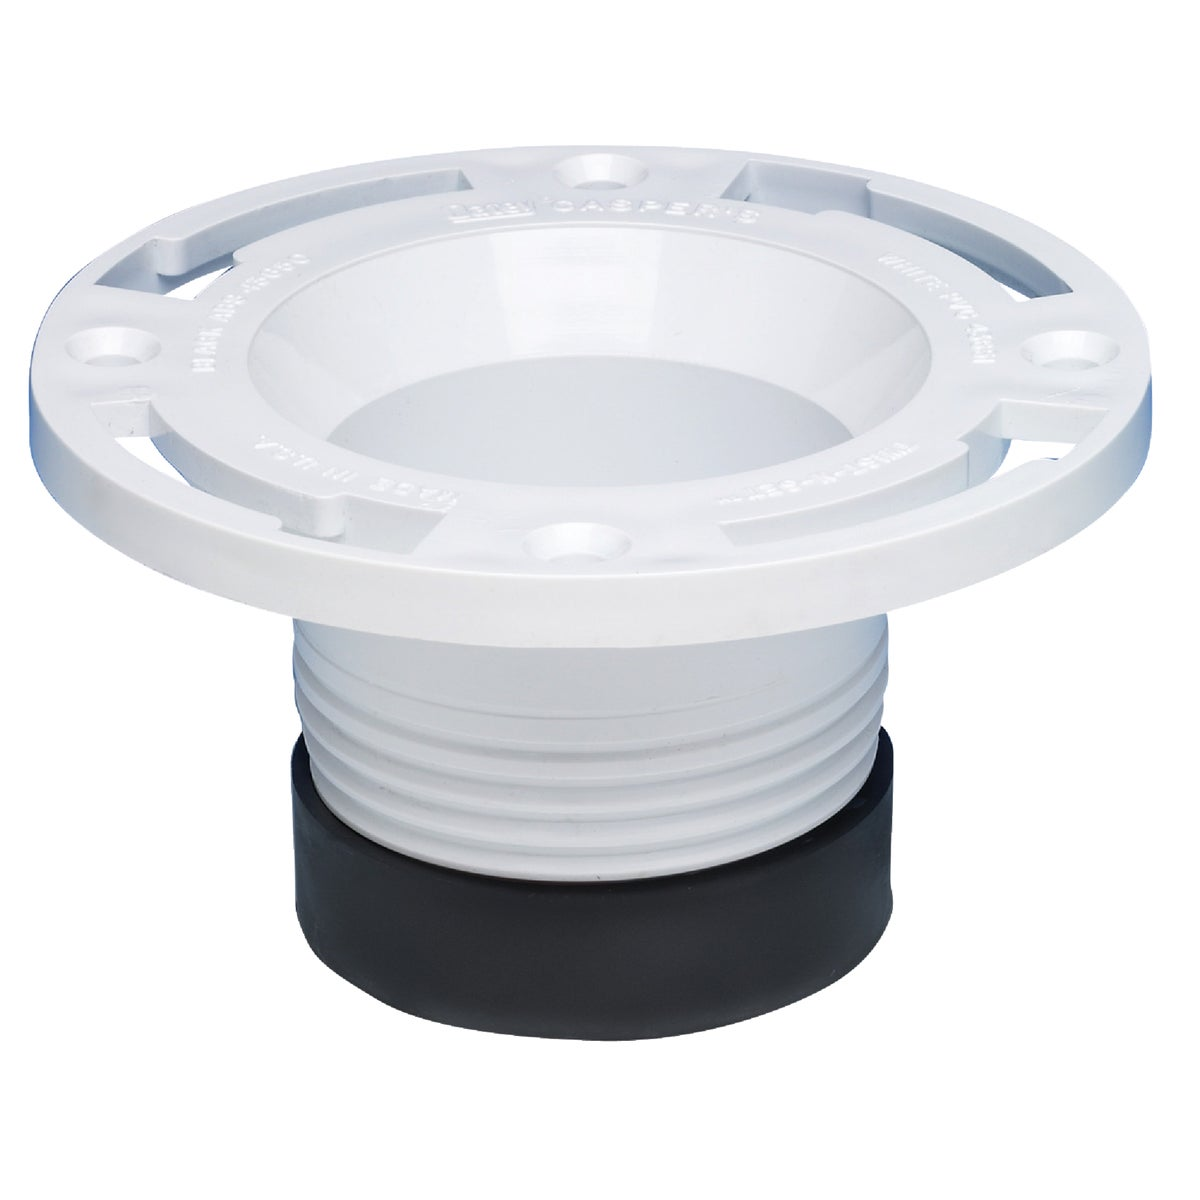 TWIST/SET CLOSET FLANGE - 43651 by Oatey Scs